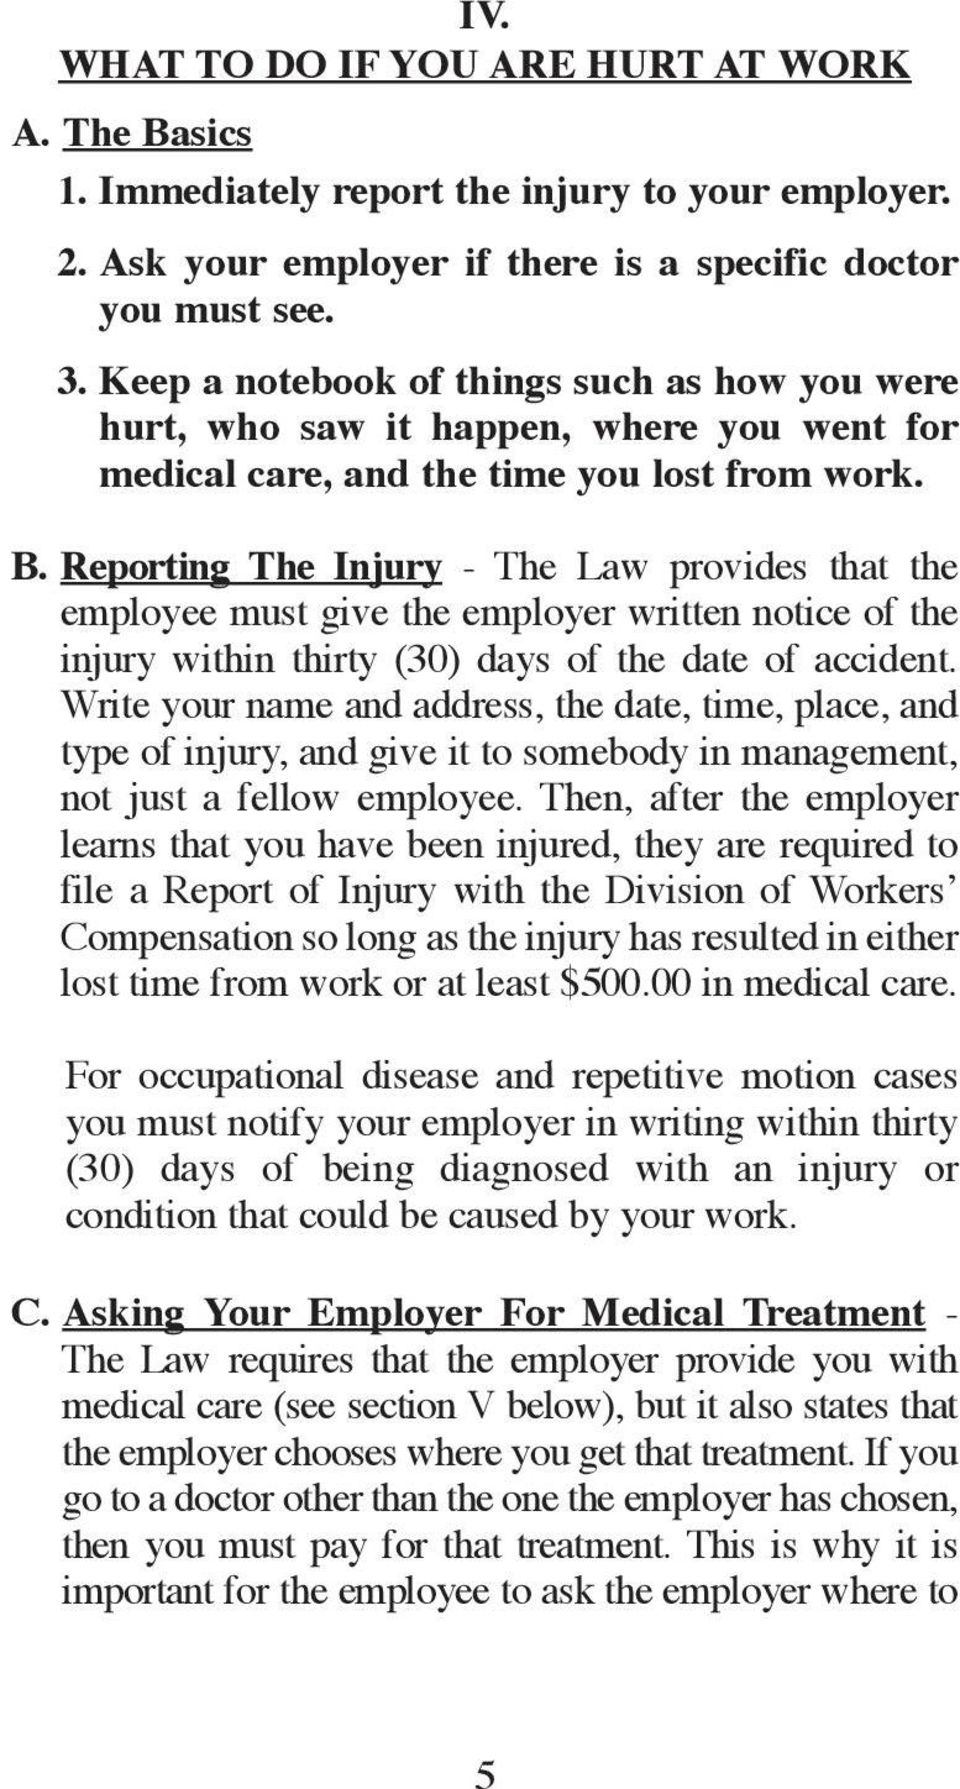 Reporting The Injury - The Law provides that the employee must give the employer written notice of the injury within thirty (30) days of the date of accident.